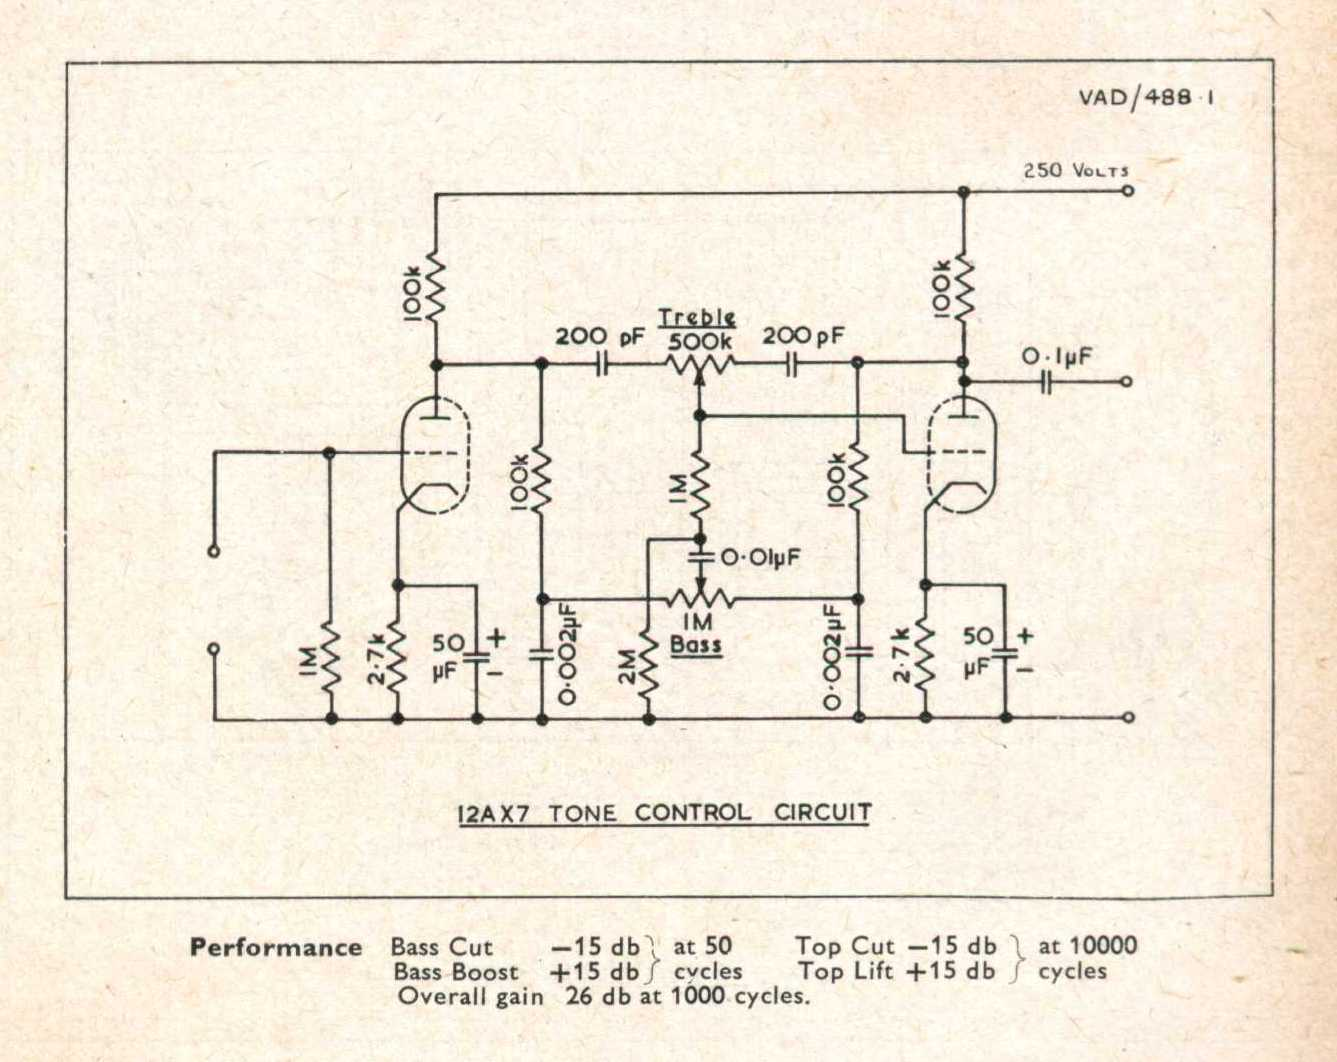 Preamp Tone Control Circuit Stc Amplifier Stage Brimar Tube Manual 8 1959